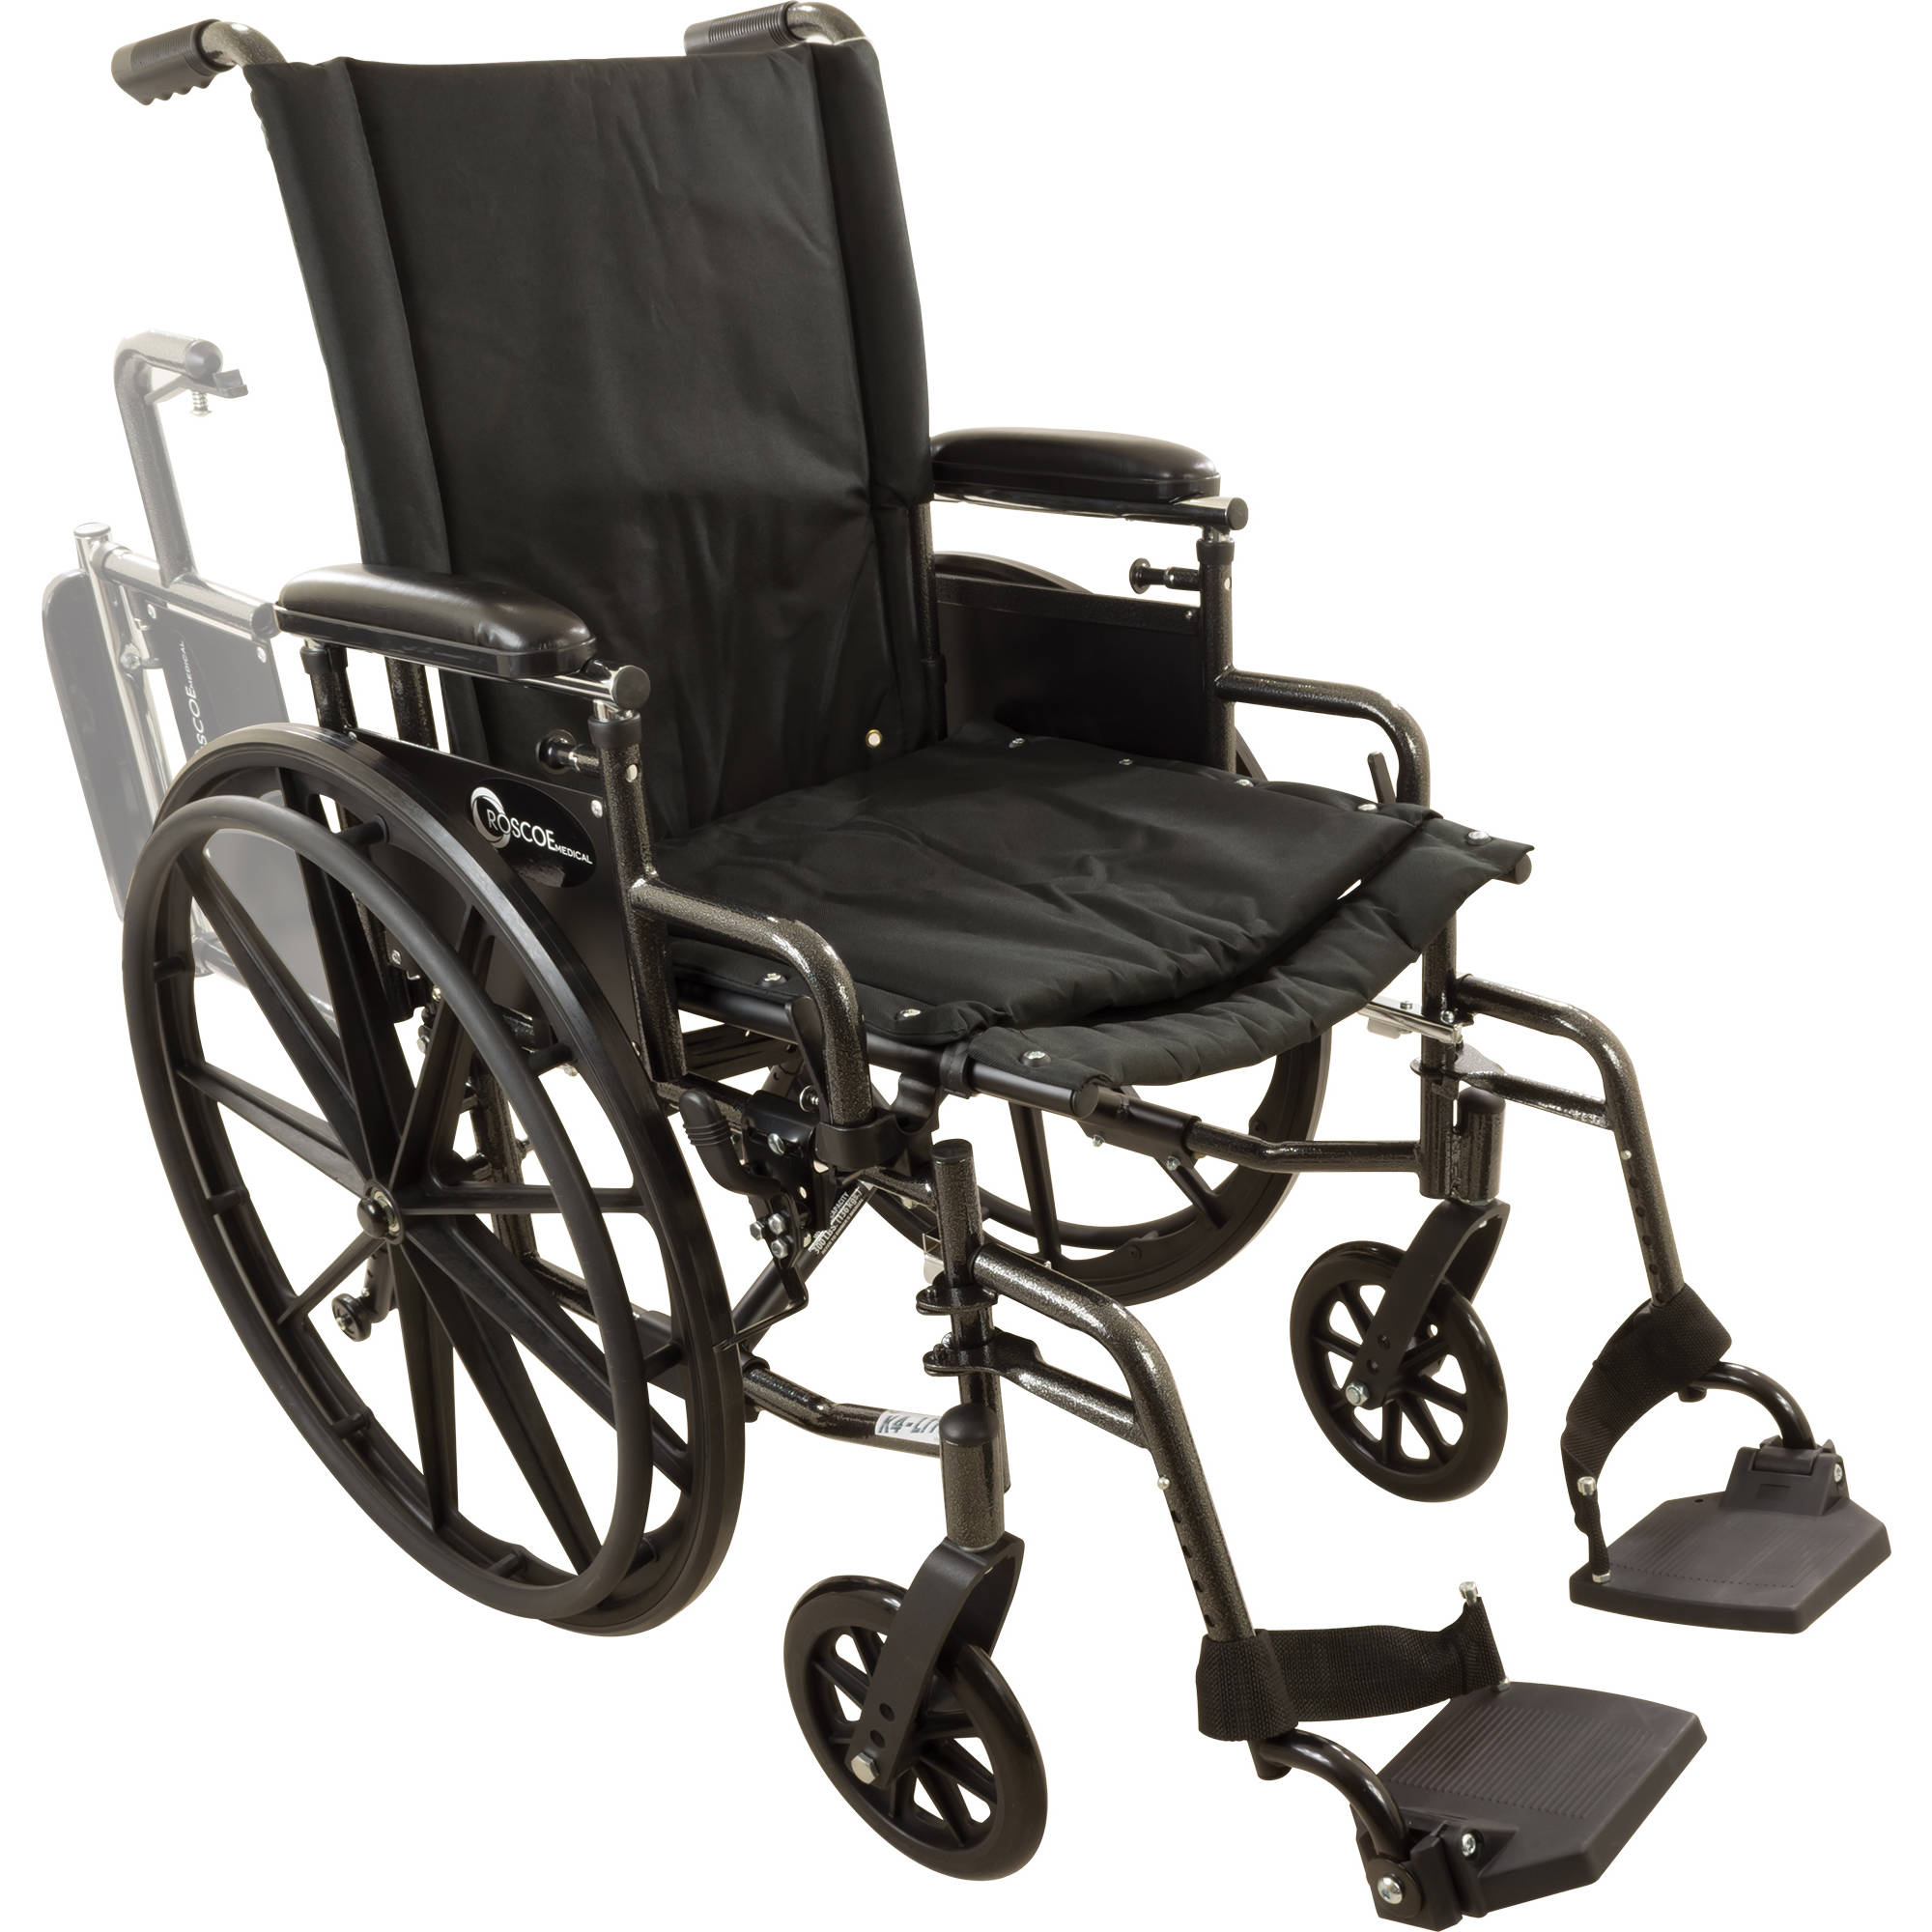 "Roscoe Onyx K4 Wheelchair, 18"" with Swing Away Footrests"